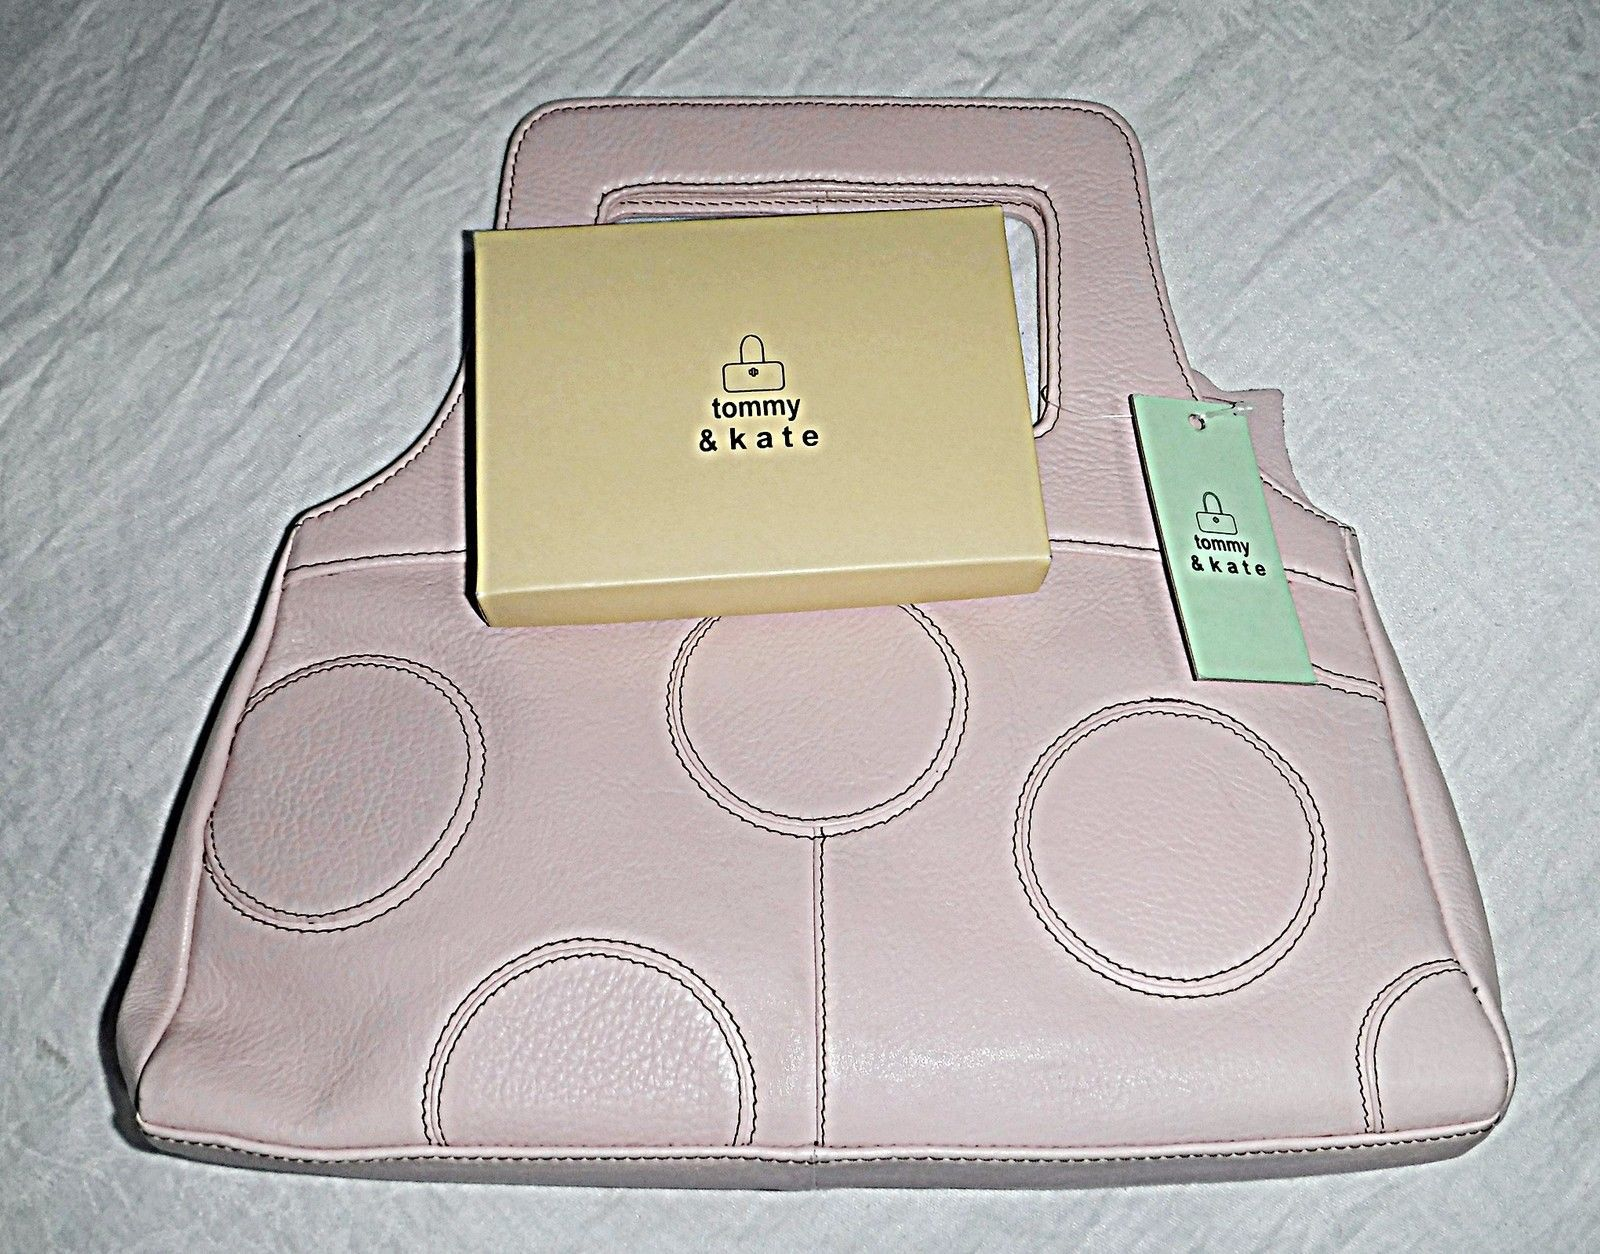 39c58fe96de 'TOMMY & KATE' ICED PINK LEATHER HANDBAG WITH MATCHING BOXED PURSE IN DUST  BAG. '